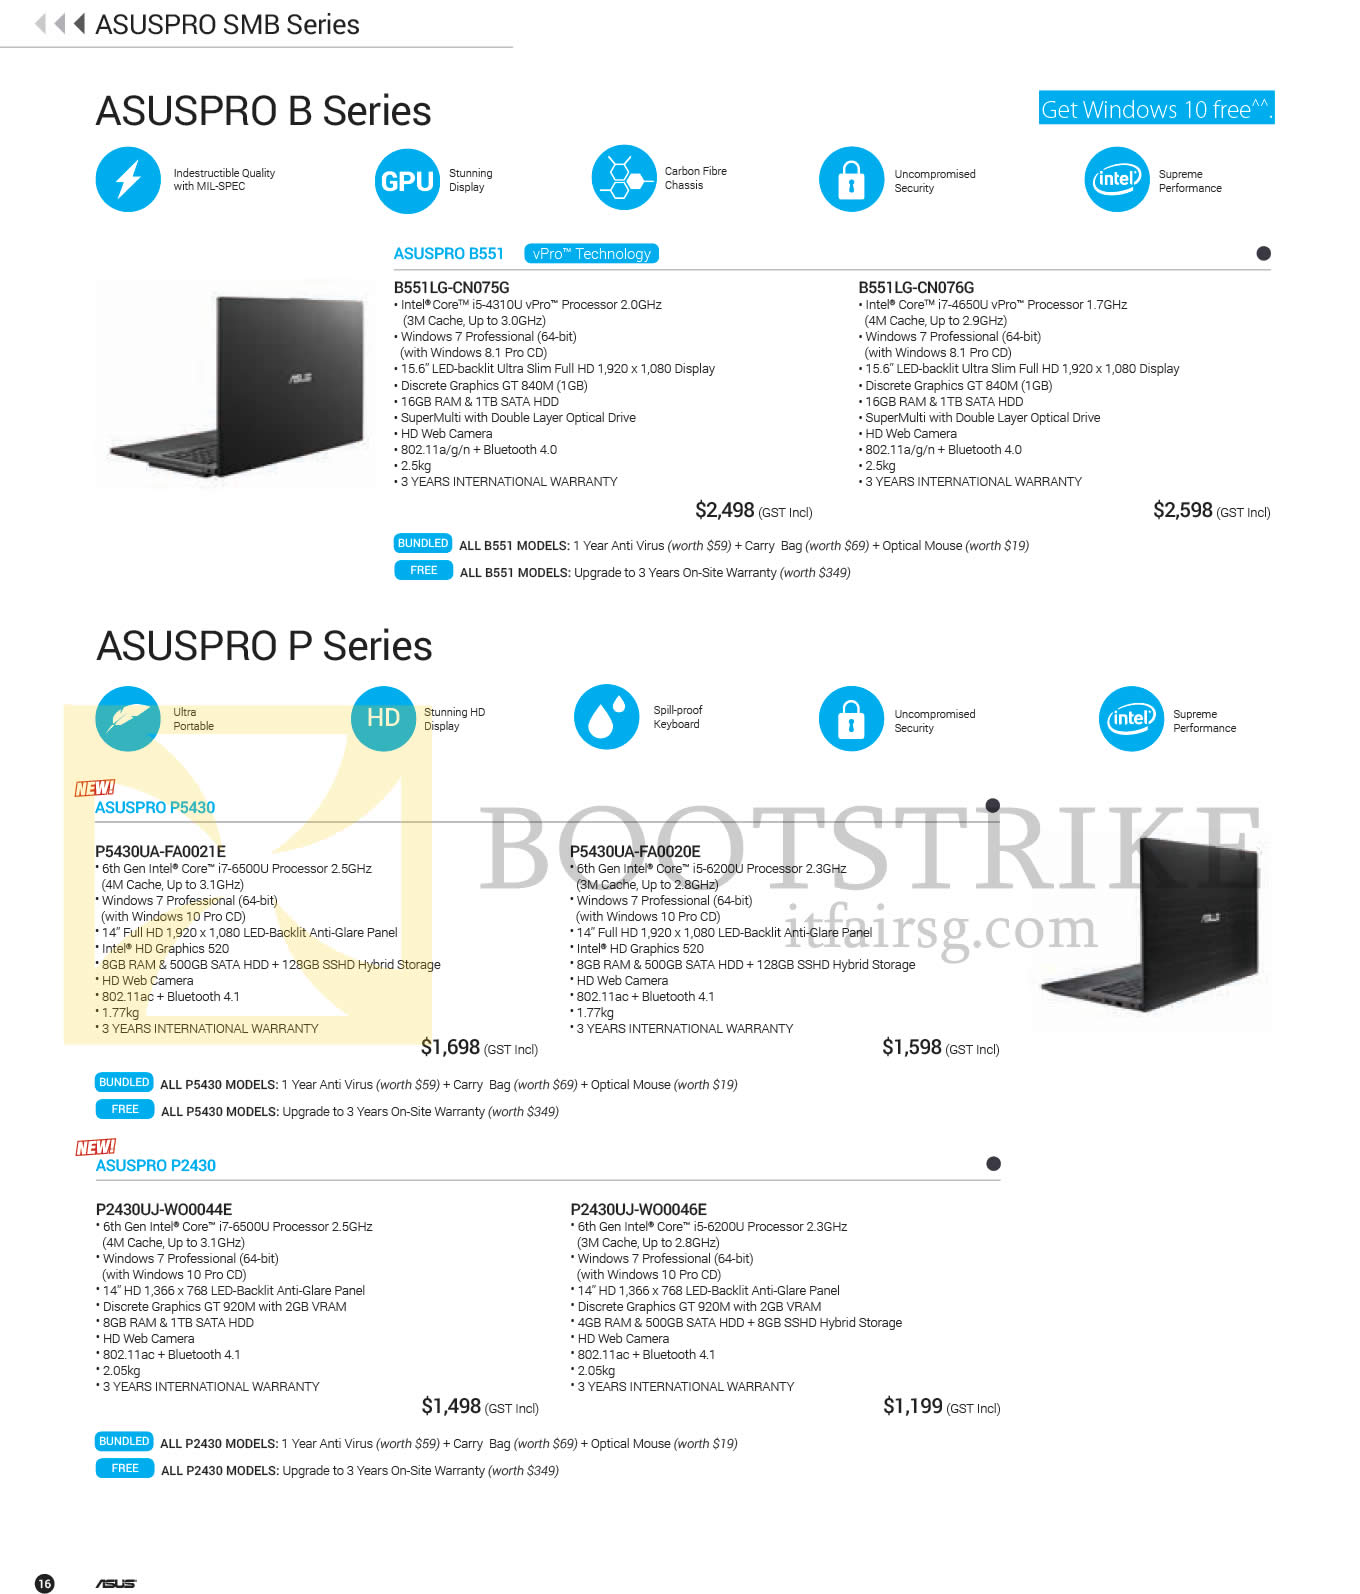 PC SHOW 2016 price list image brochure of ASUS Notebooks ASUSPRO Series, B551LG-CN075G, B551LG-CN076G, P5430UA-FA0021E, P5430UA-FA0020E, P2430UJ-WO0044E, P2430UJ-WO0046E